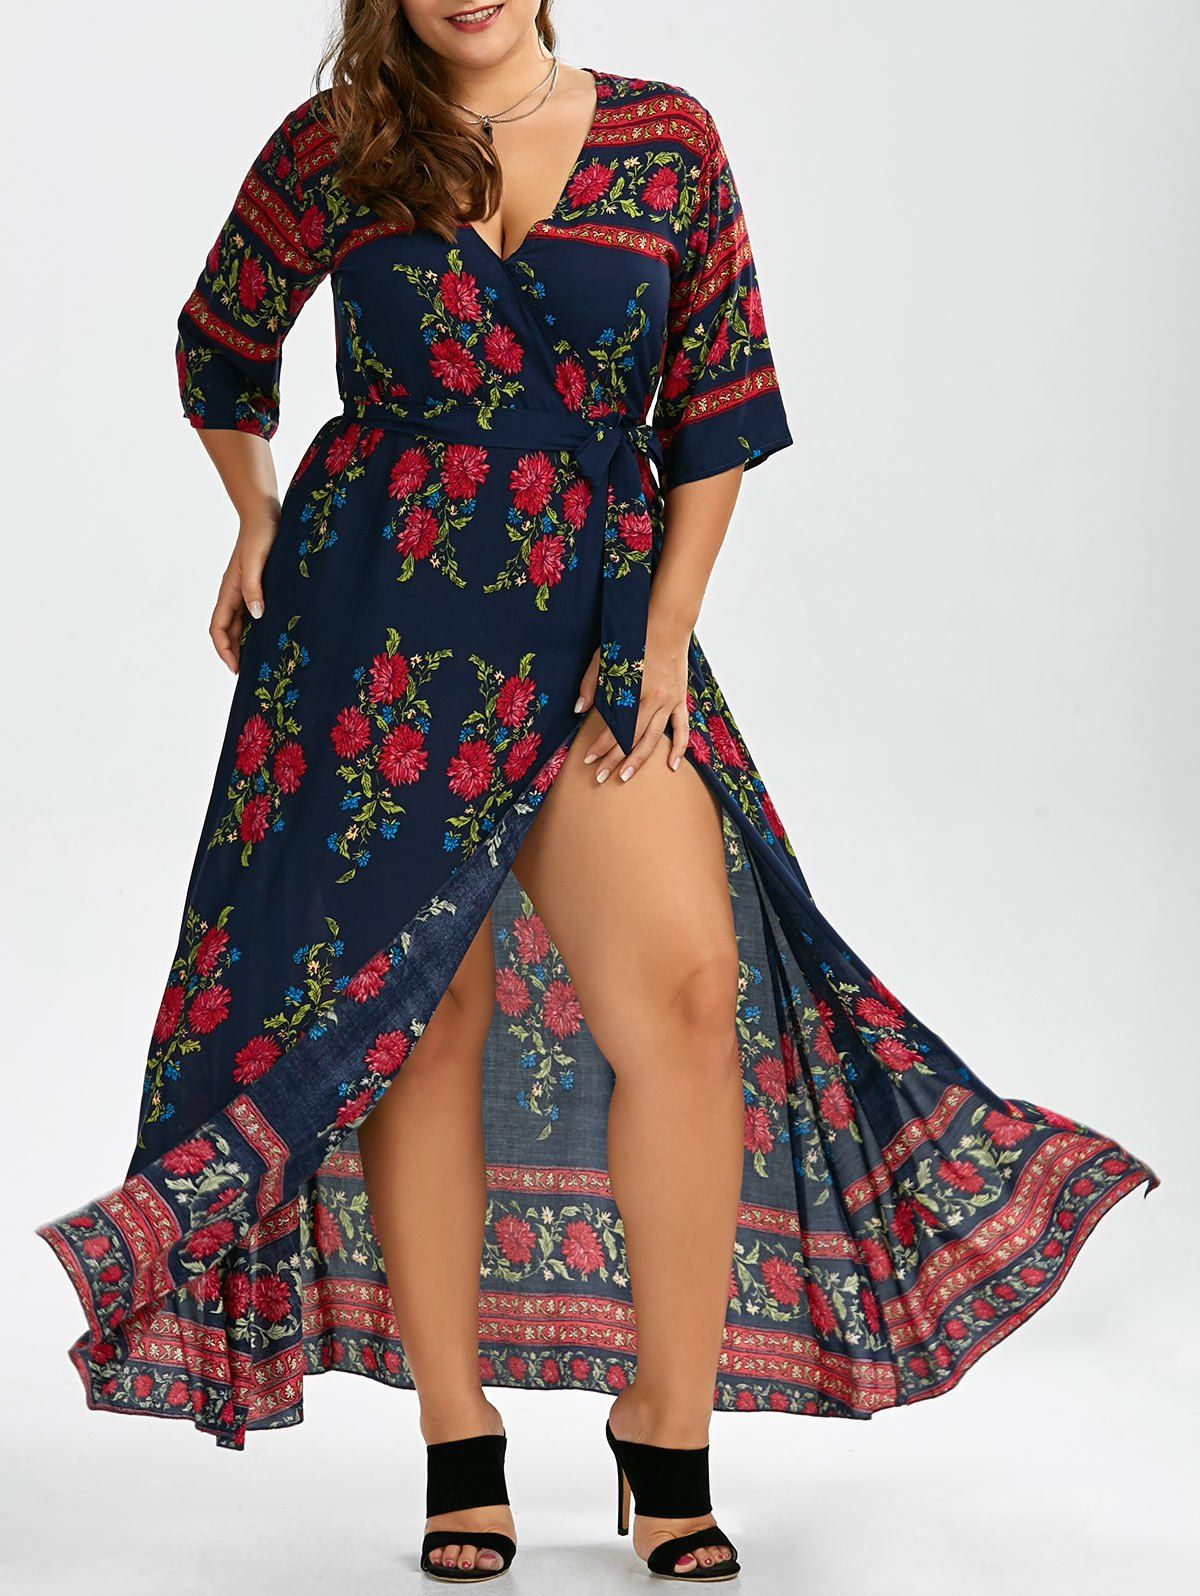 0de108bac2 ... Clothing For Women Fashion Sale Online. Floor Length Floral Plus Size V  Neck Hawaiian Dress In Purplish Blue